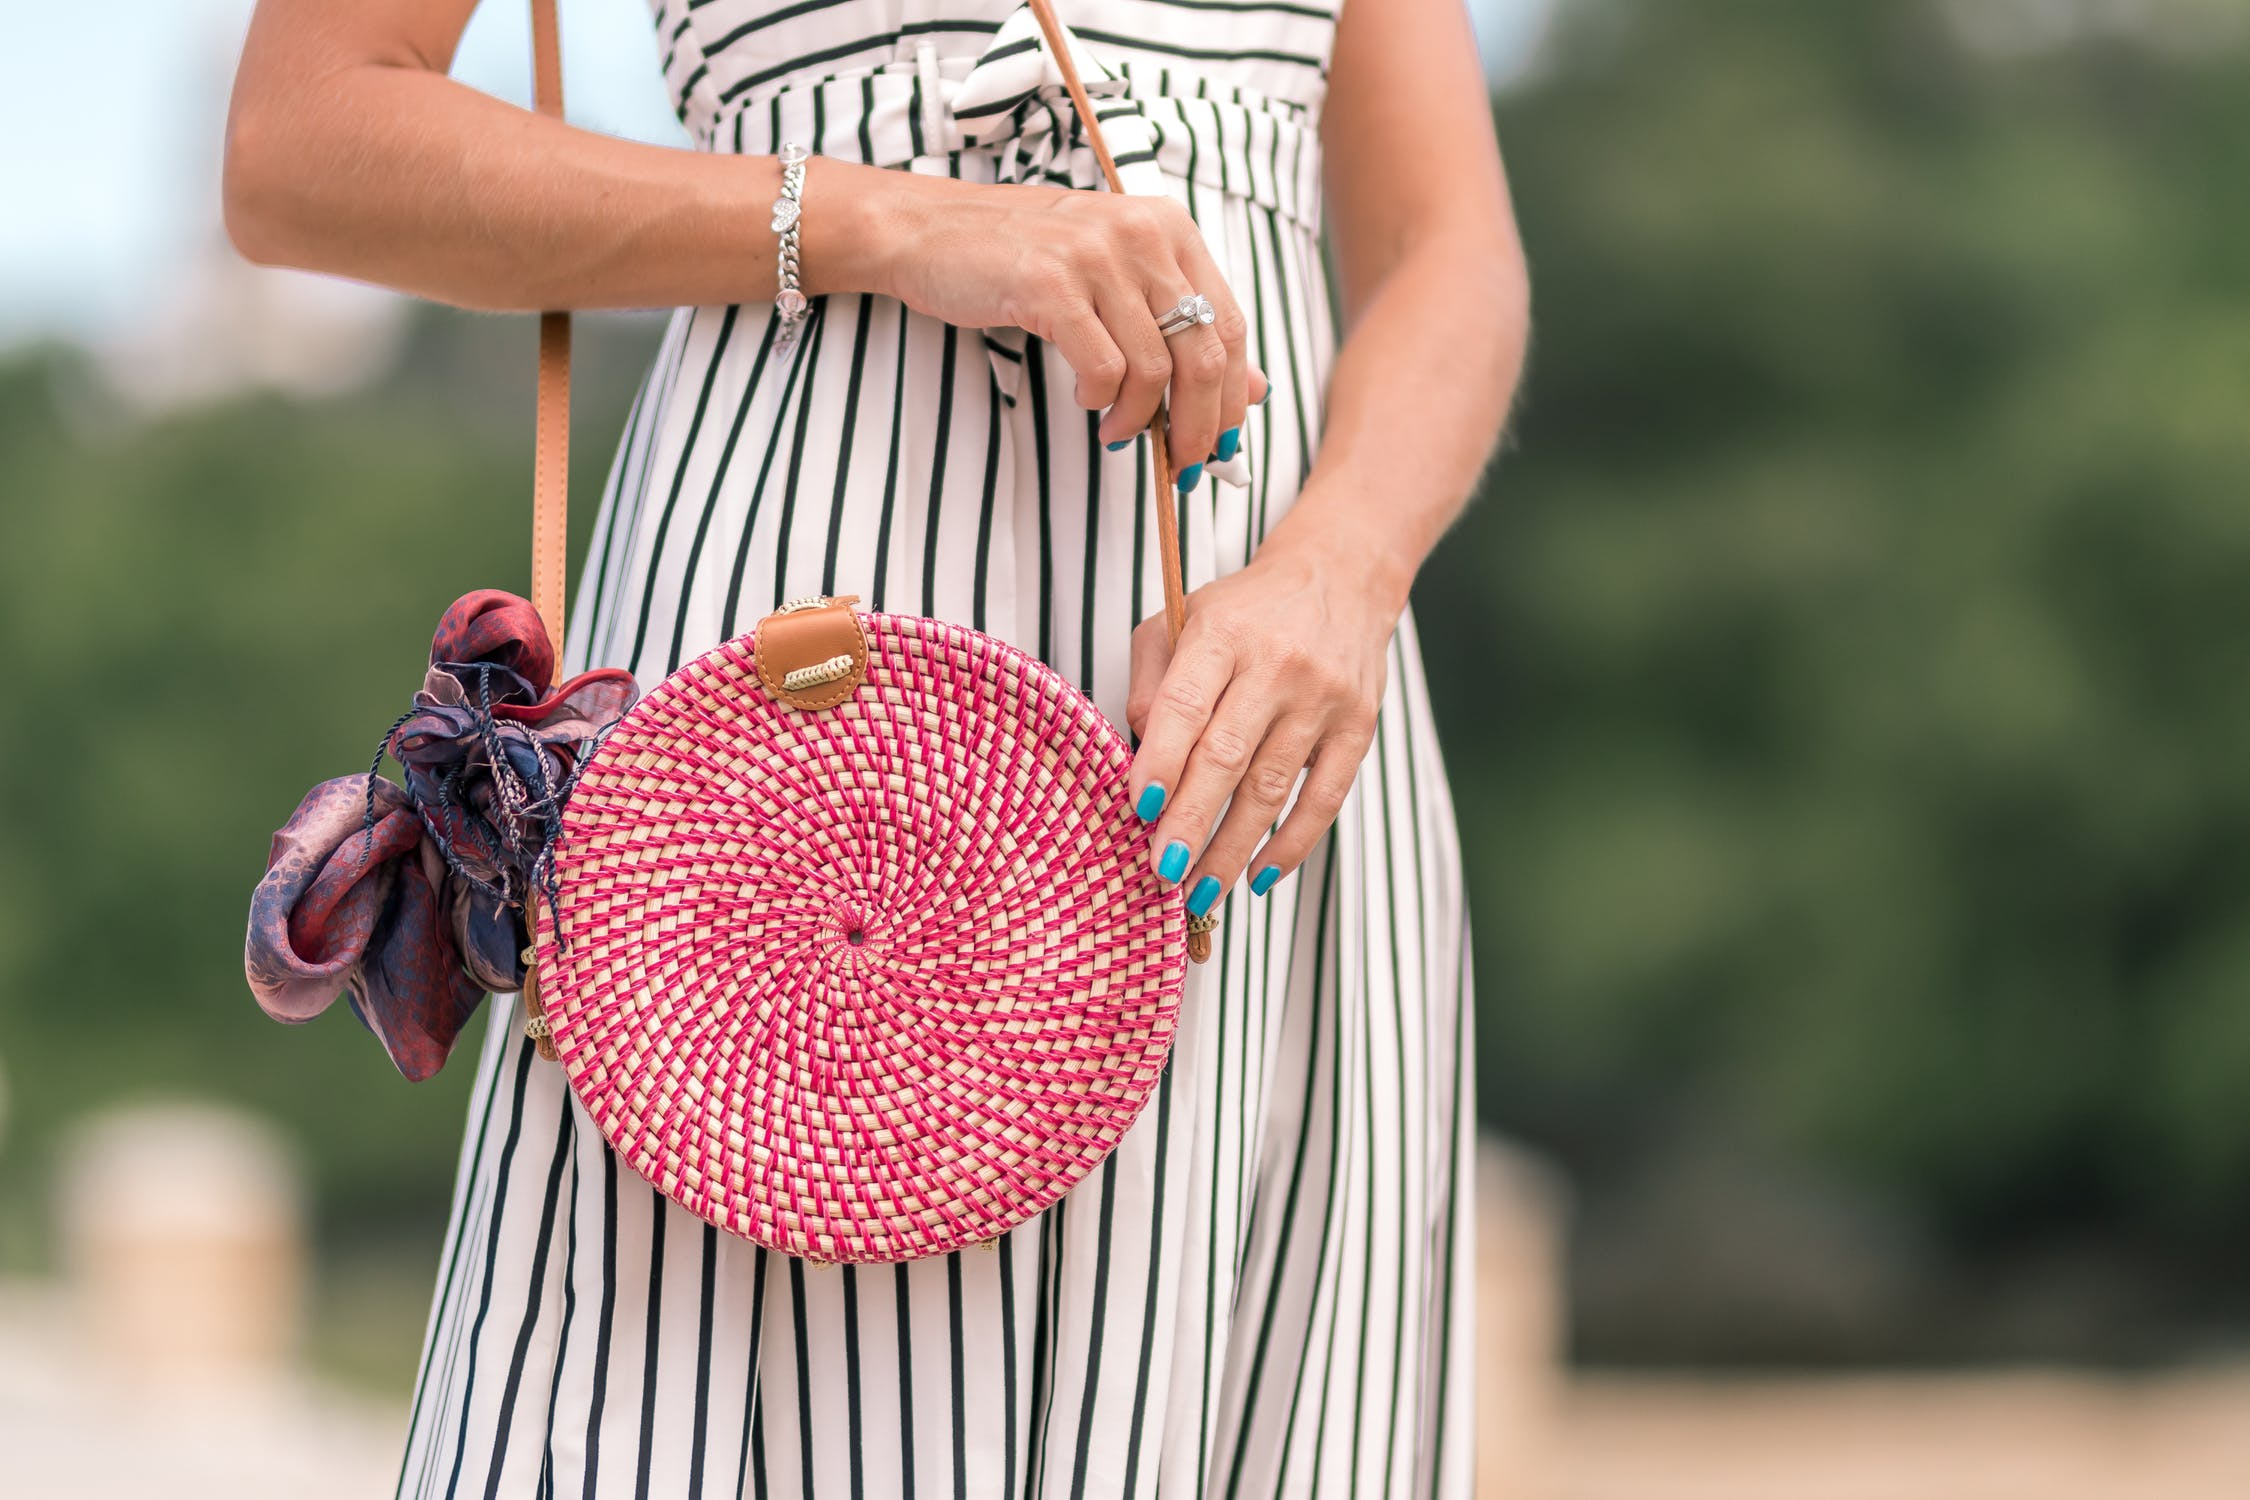 The Circle Handbag Trend Is Not Going Anywhere!